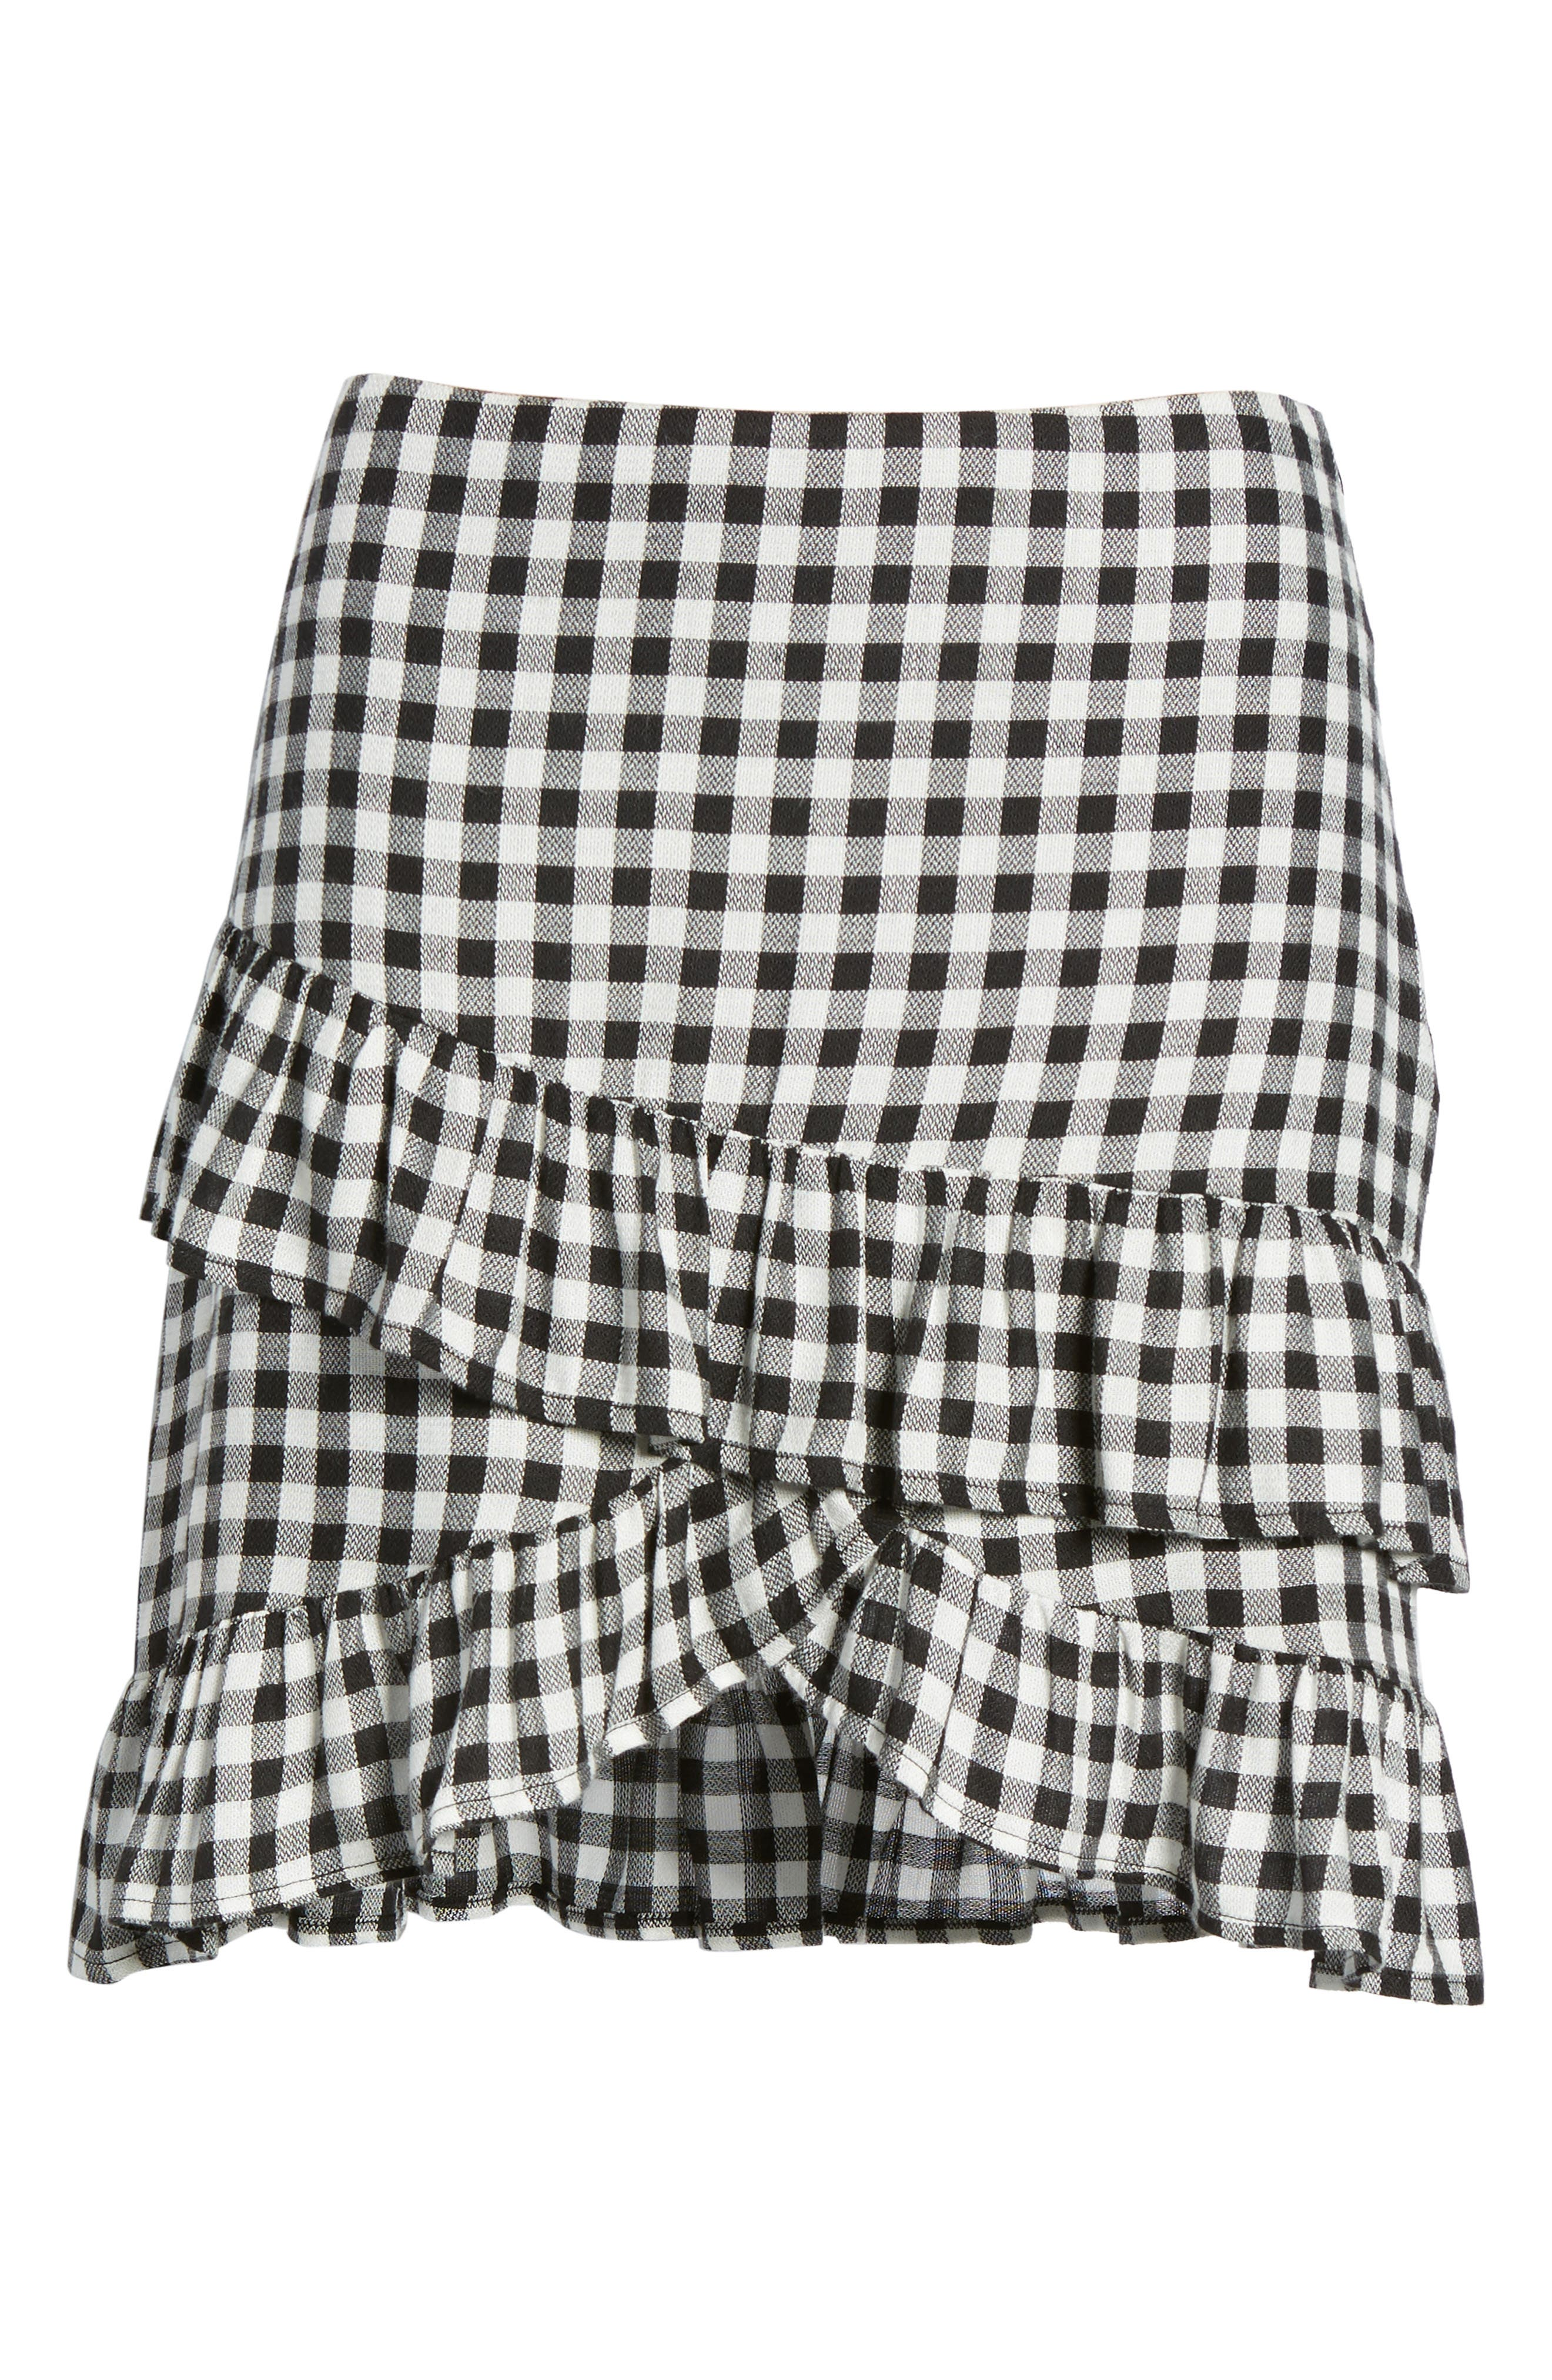 Day Trip Gingham Ruffle Skirt,                             Alternate thumbnail 6, color,                             003